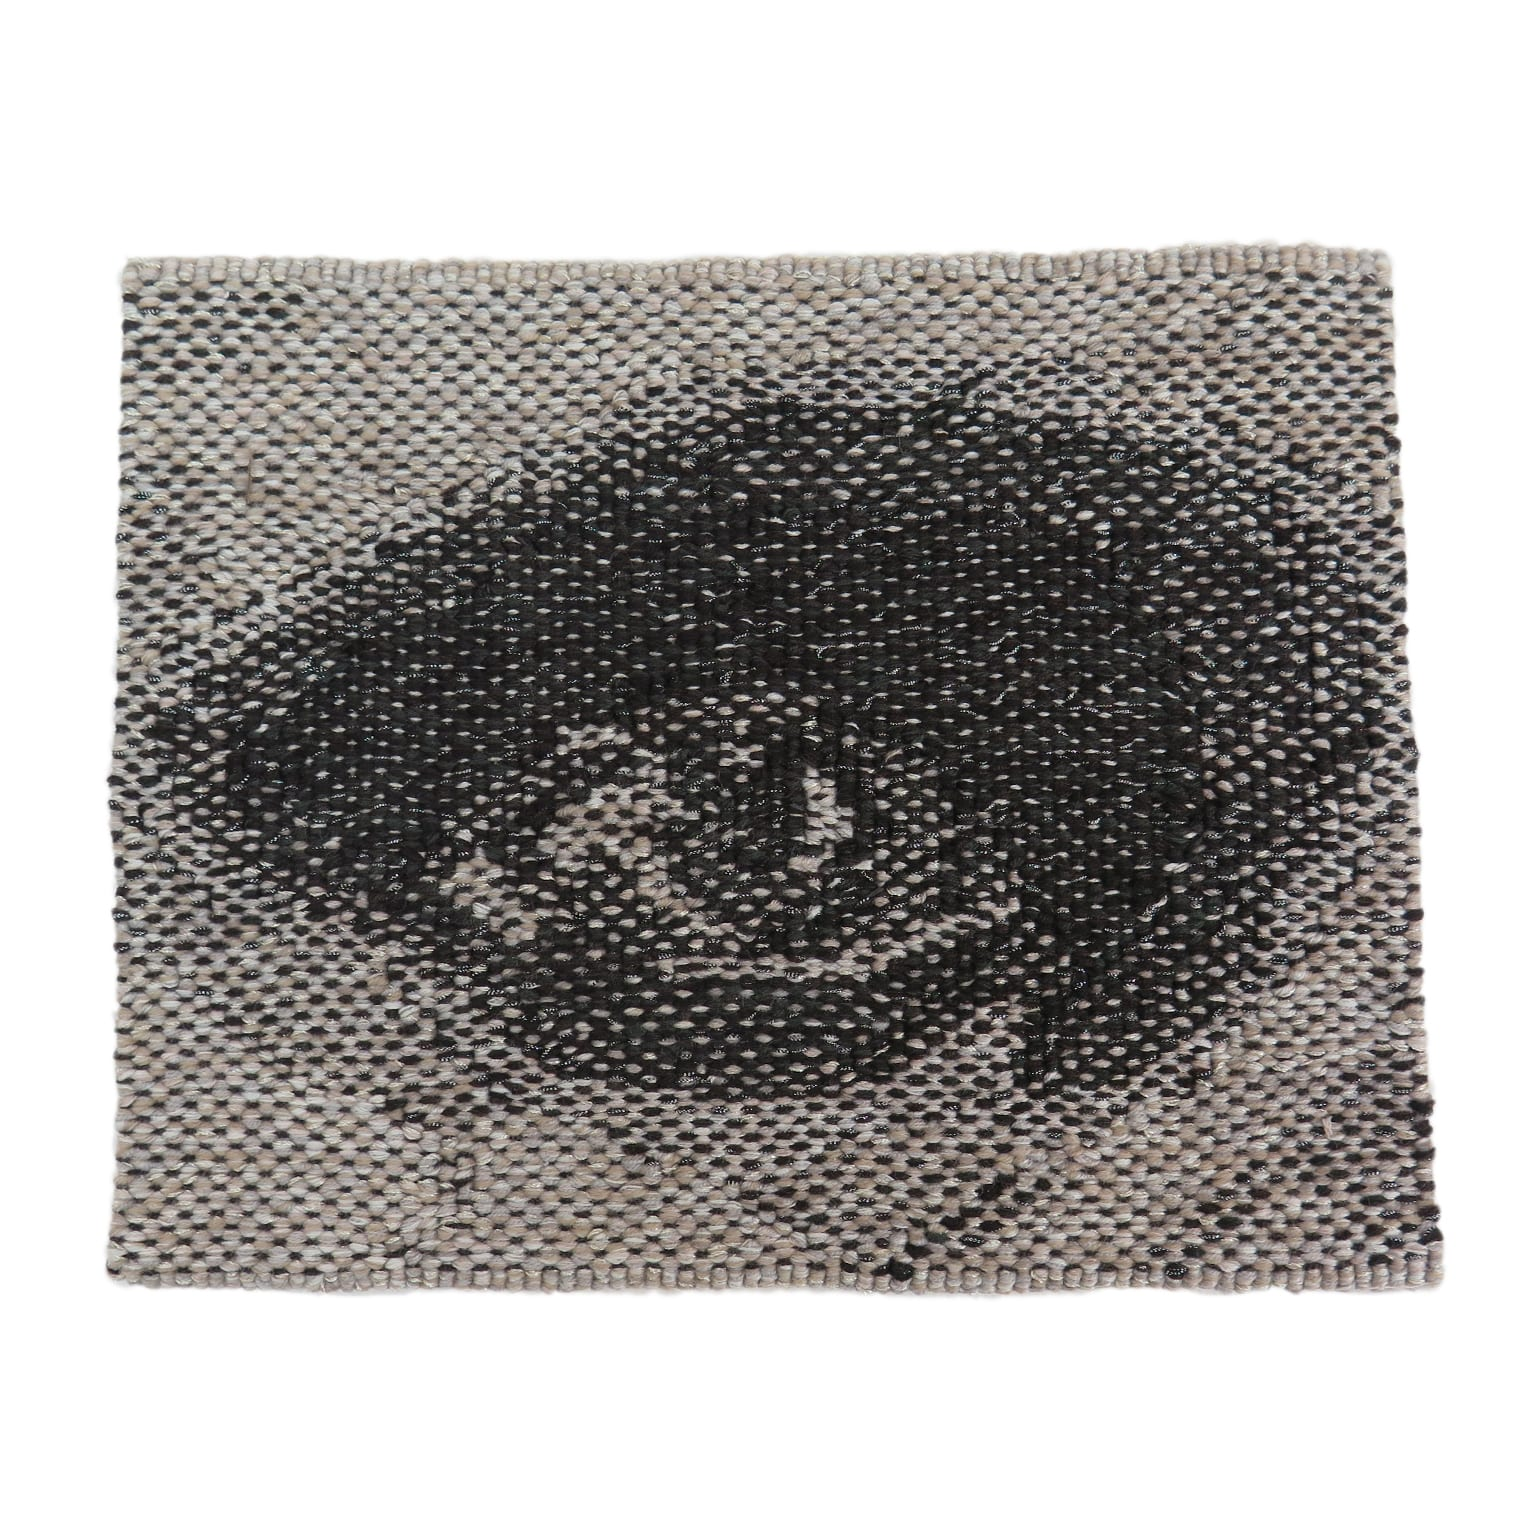 'Miili' Edition #6, 2019, designed by Brook Andrew, woven by Pamela Joyce. Wool, cotton, Lurex. 23.2 x 28.6 cm